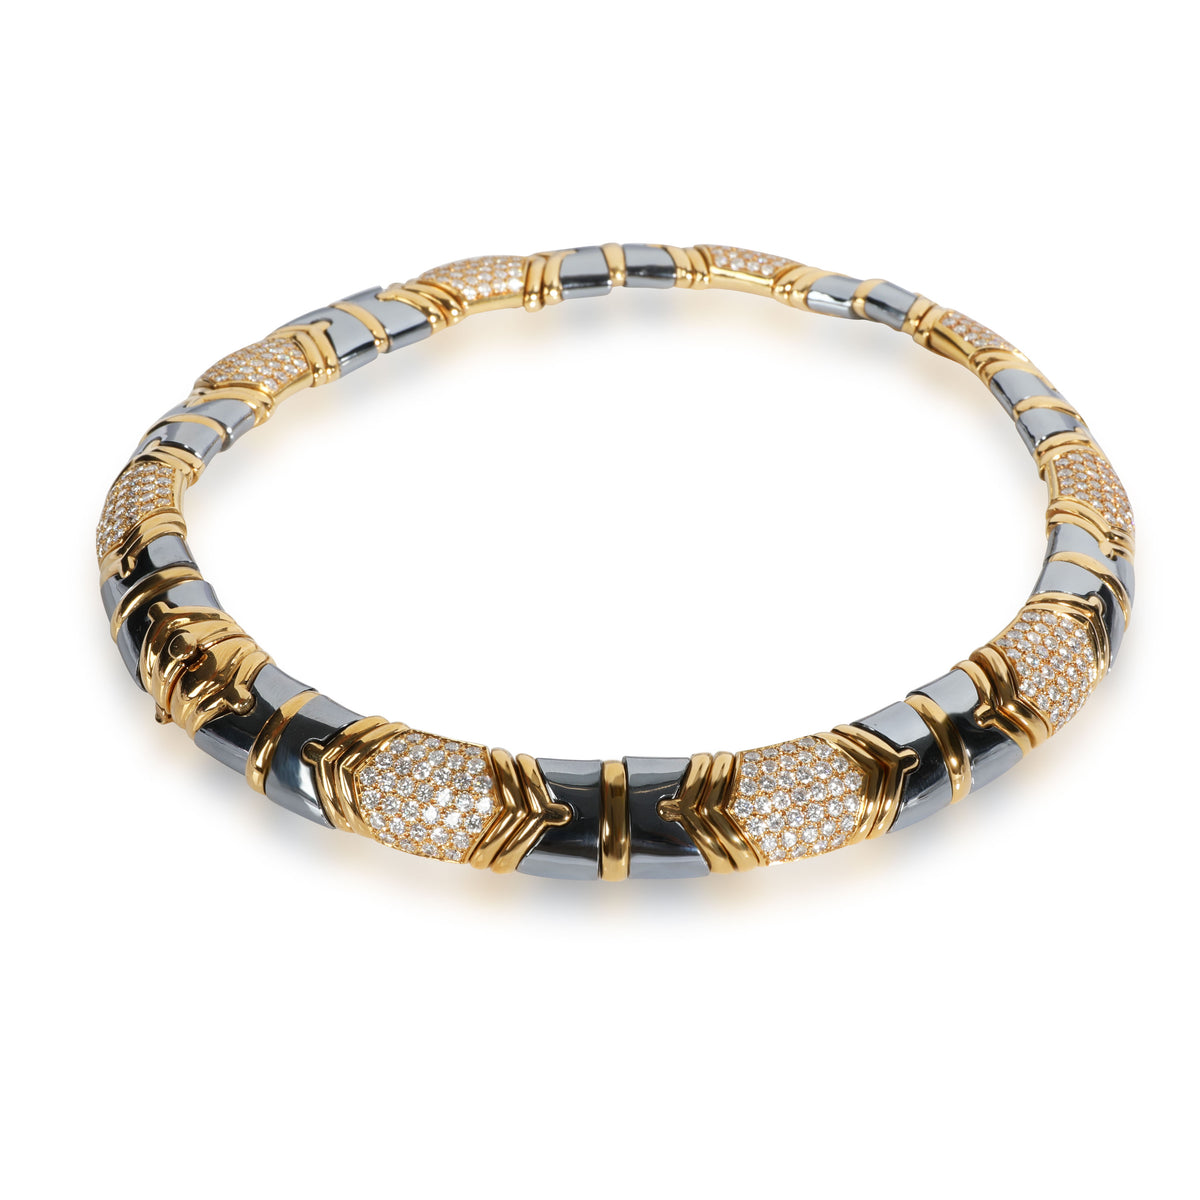 Bulgari Parentisi Diamond & Hematite Necklace in 18K Yellow Gold 11.51 CTW